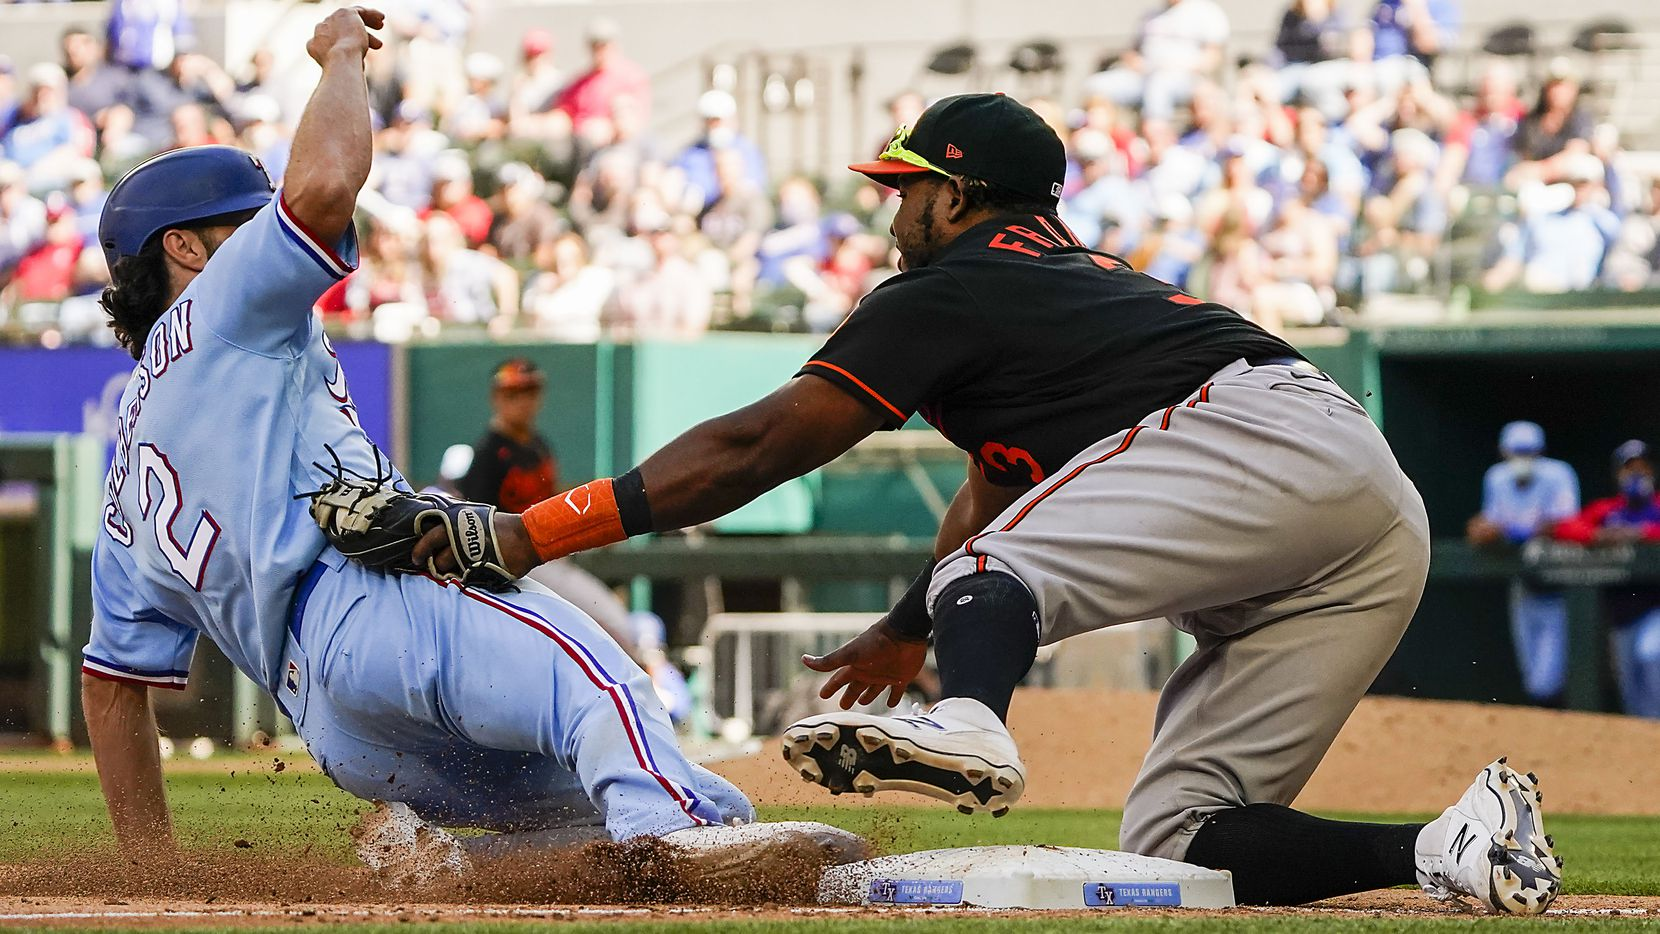 Texas Rangers infielder Charlie Culberson is out at third as Baltimore Orioles third baseman Maikel Franco applies the tag trying to advance on a bunt during the tenth inning of the Rangers 1-0 walkoff victory at Globe Life Field on Sunday, April 18, 2021. (Smiley N. Pool/The Dallas Morning News)